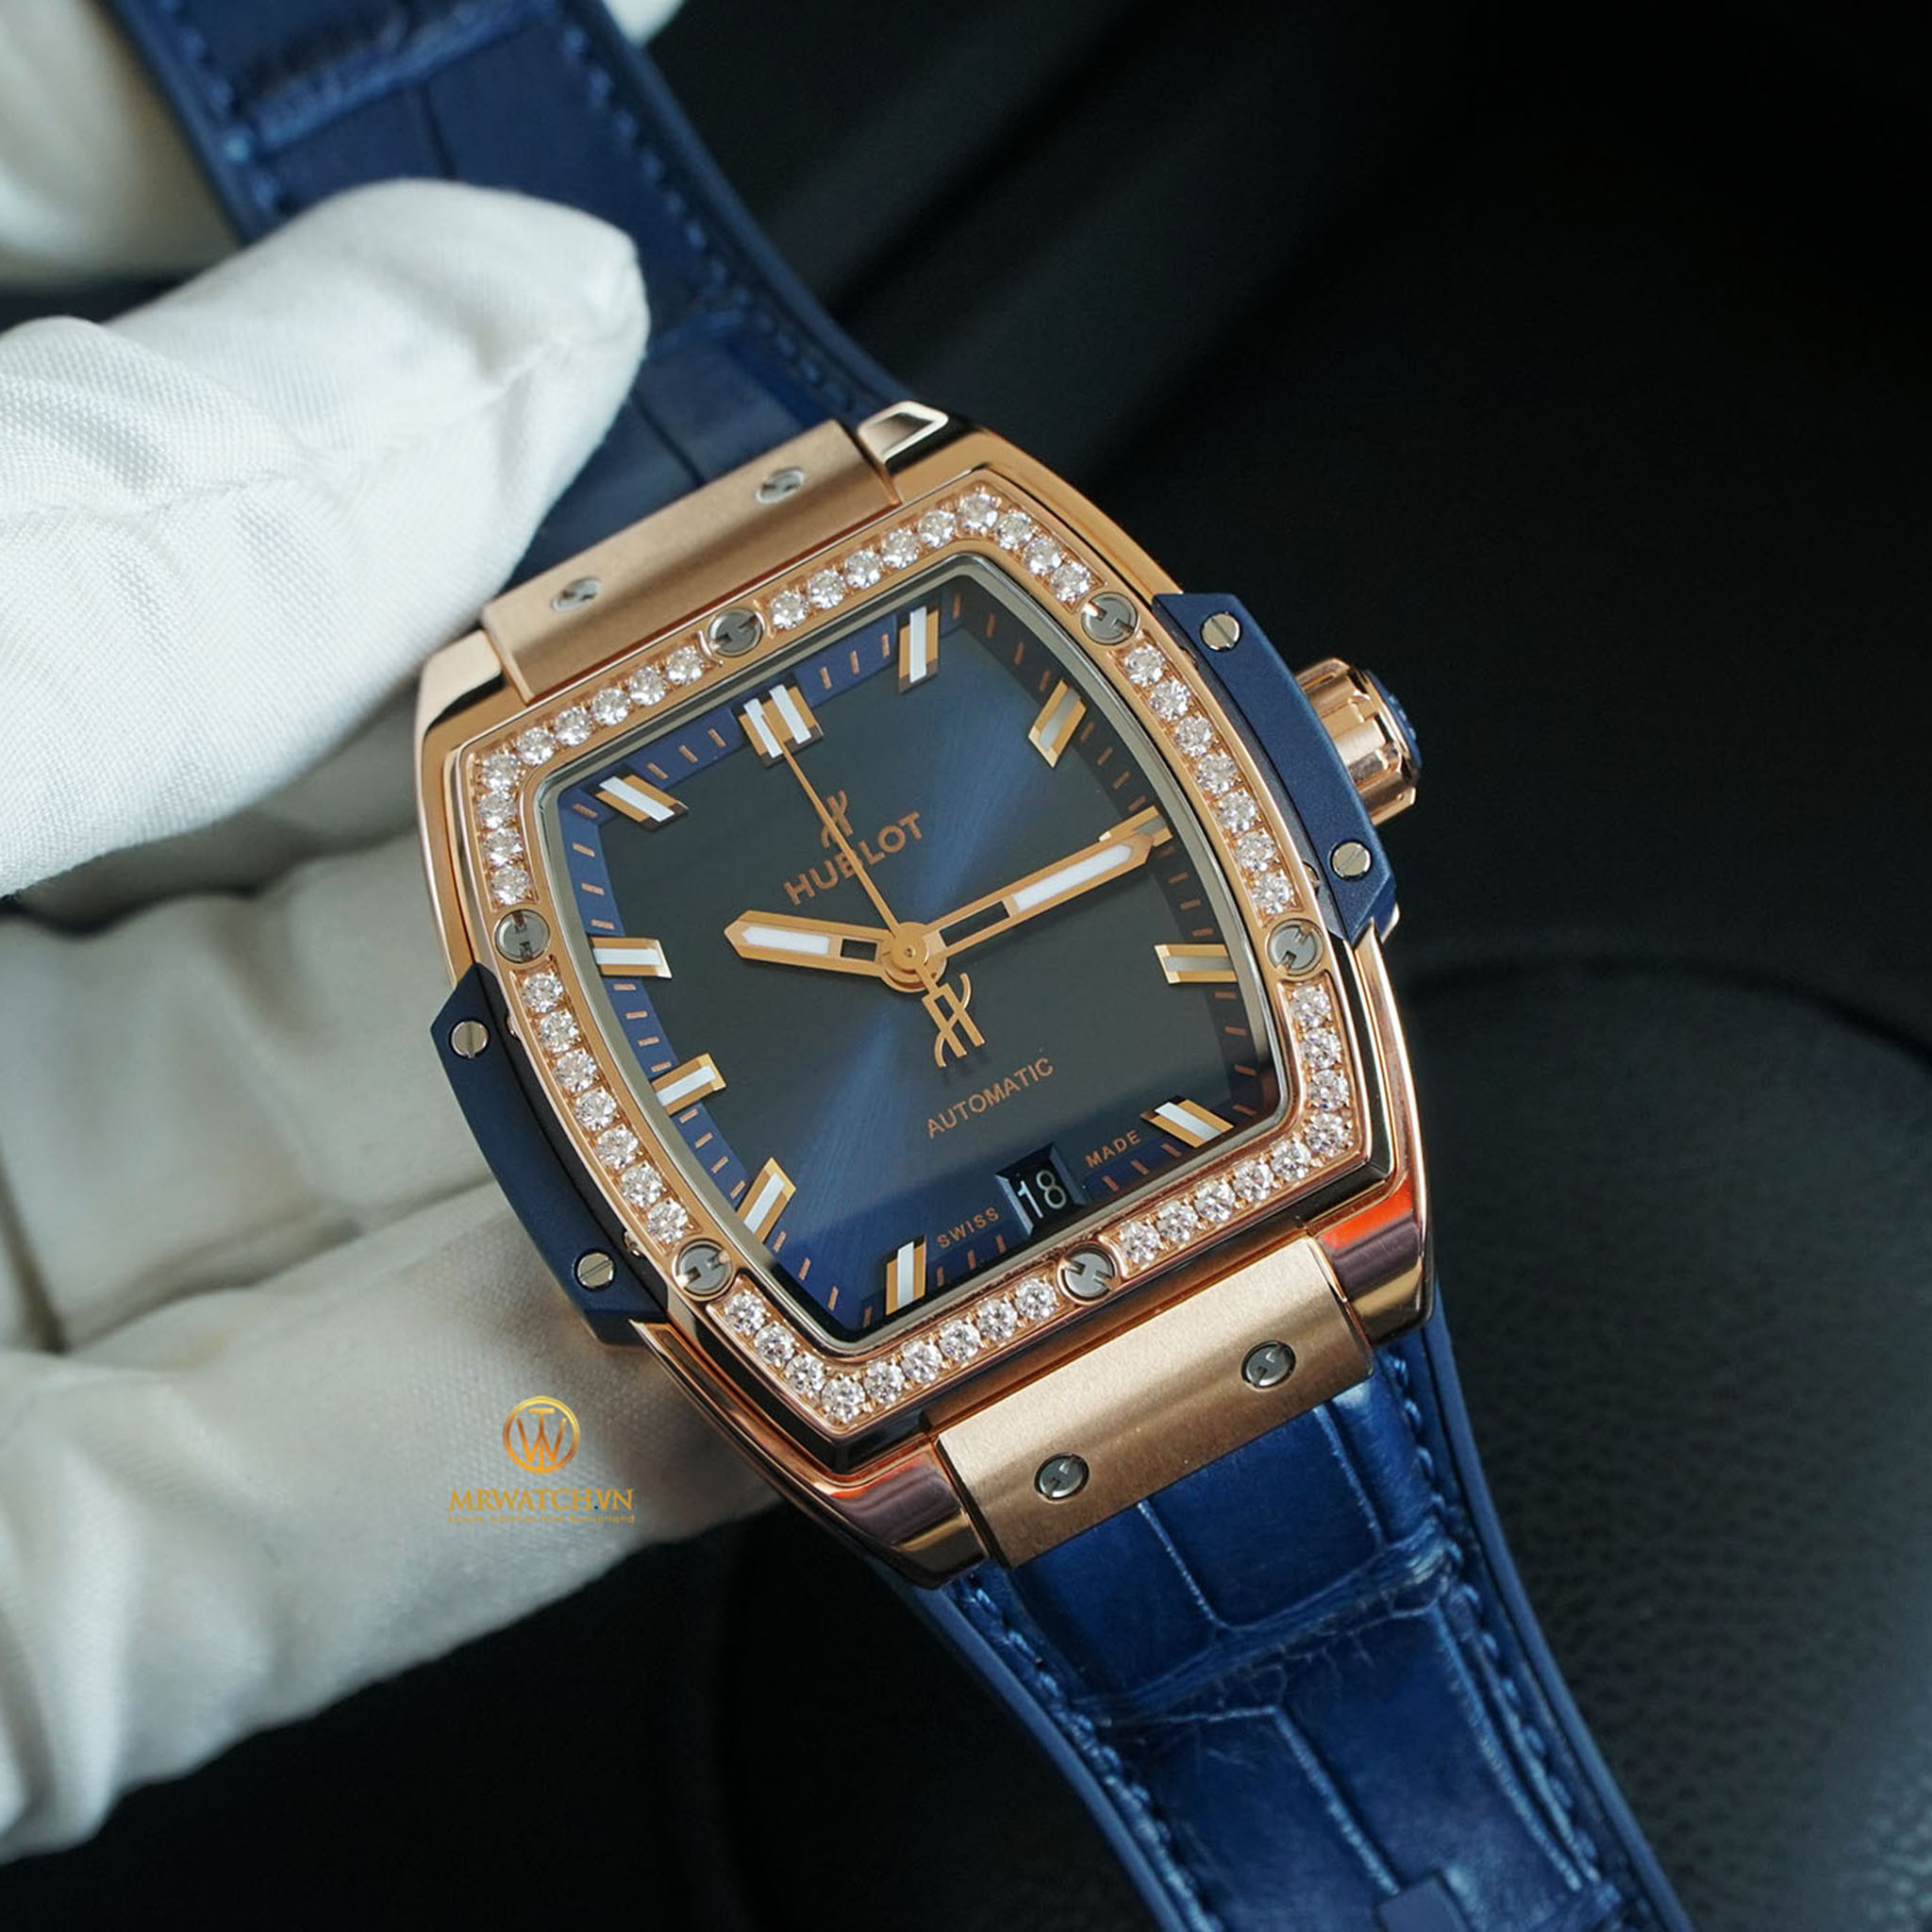 HUBLOT SPIRIT OF BIG BANG KING GOLD BLUE DIAMONDS - 39 MM 665.OX.7180.LR.1204 18K King Gold & Diamonds